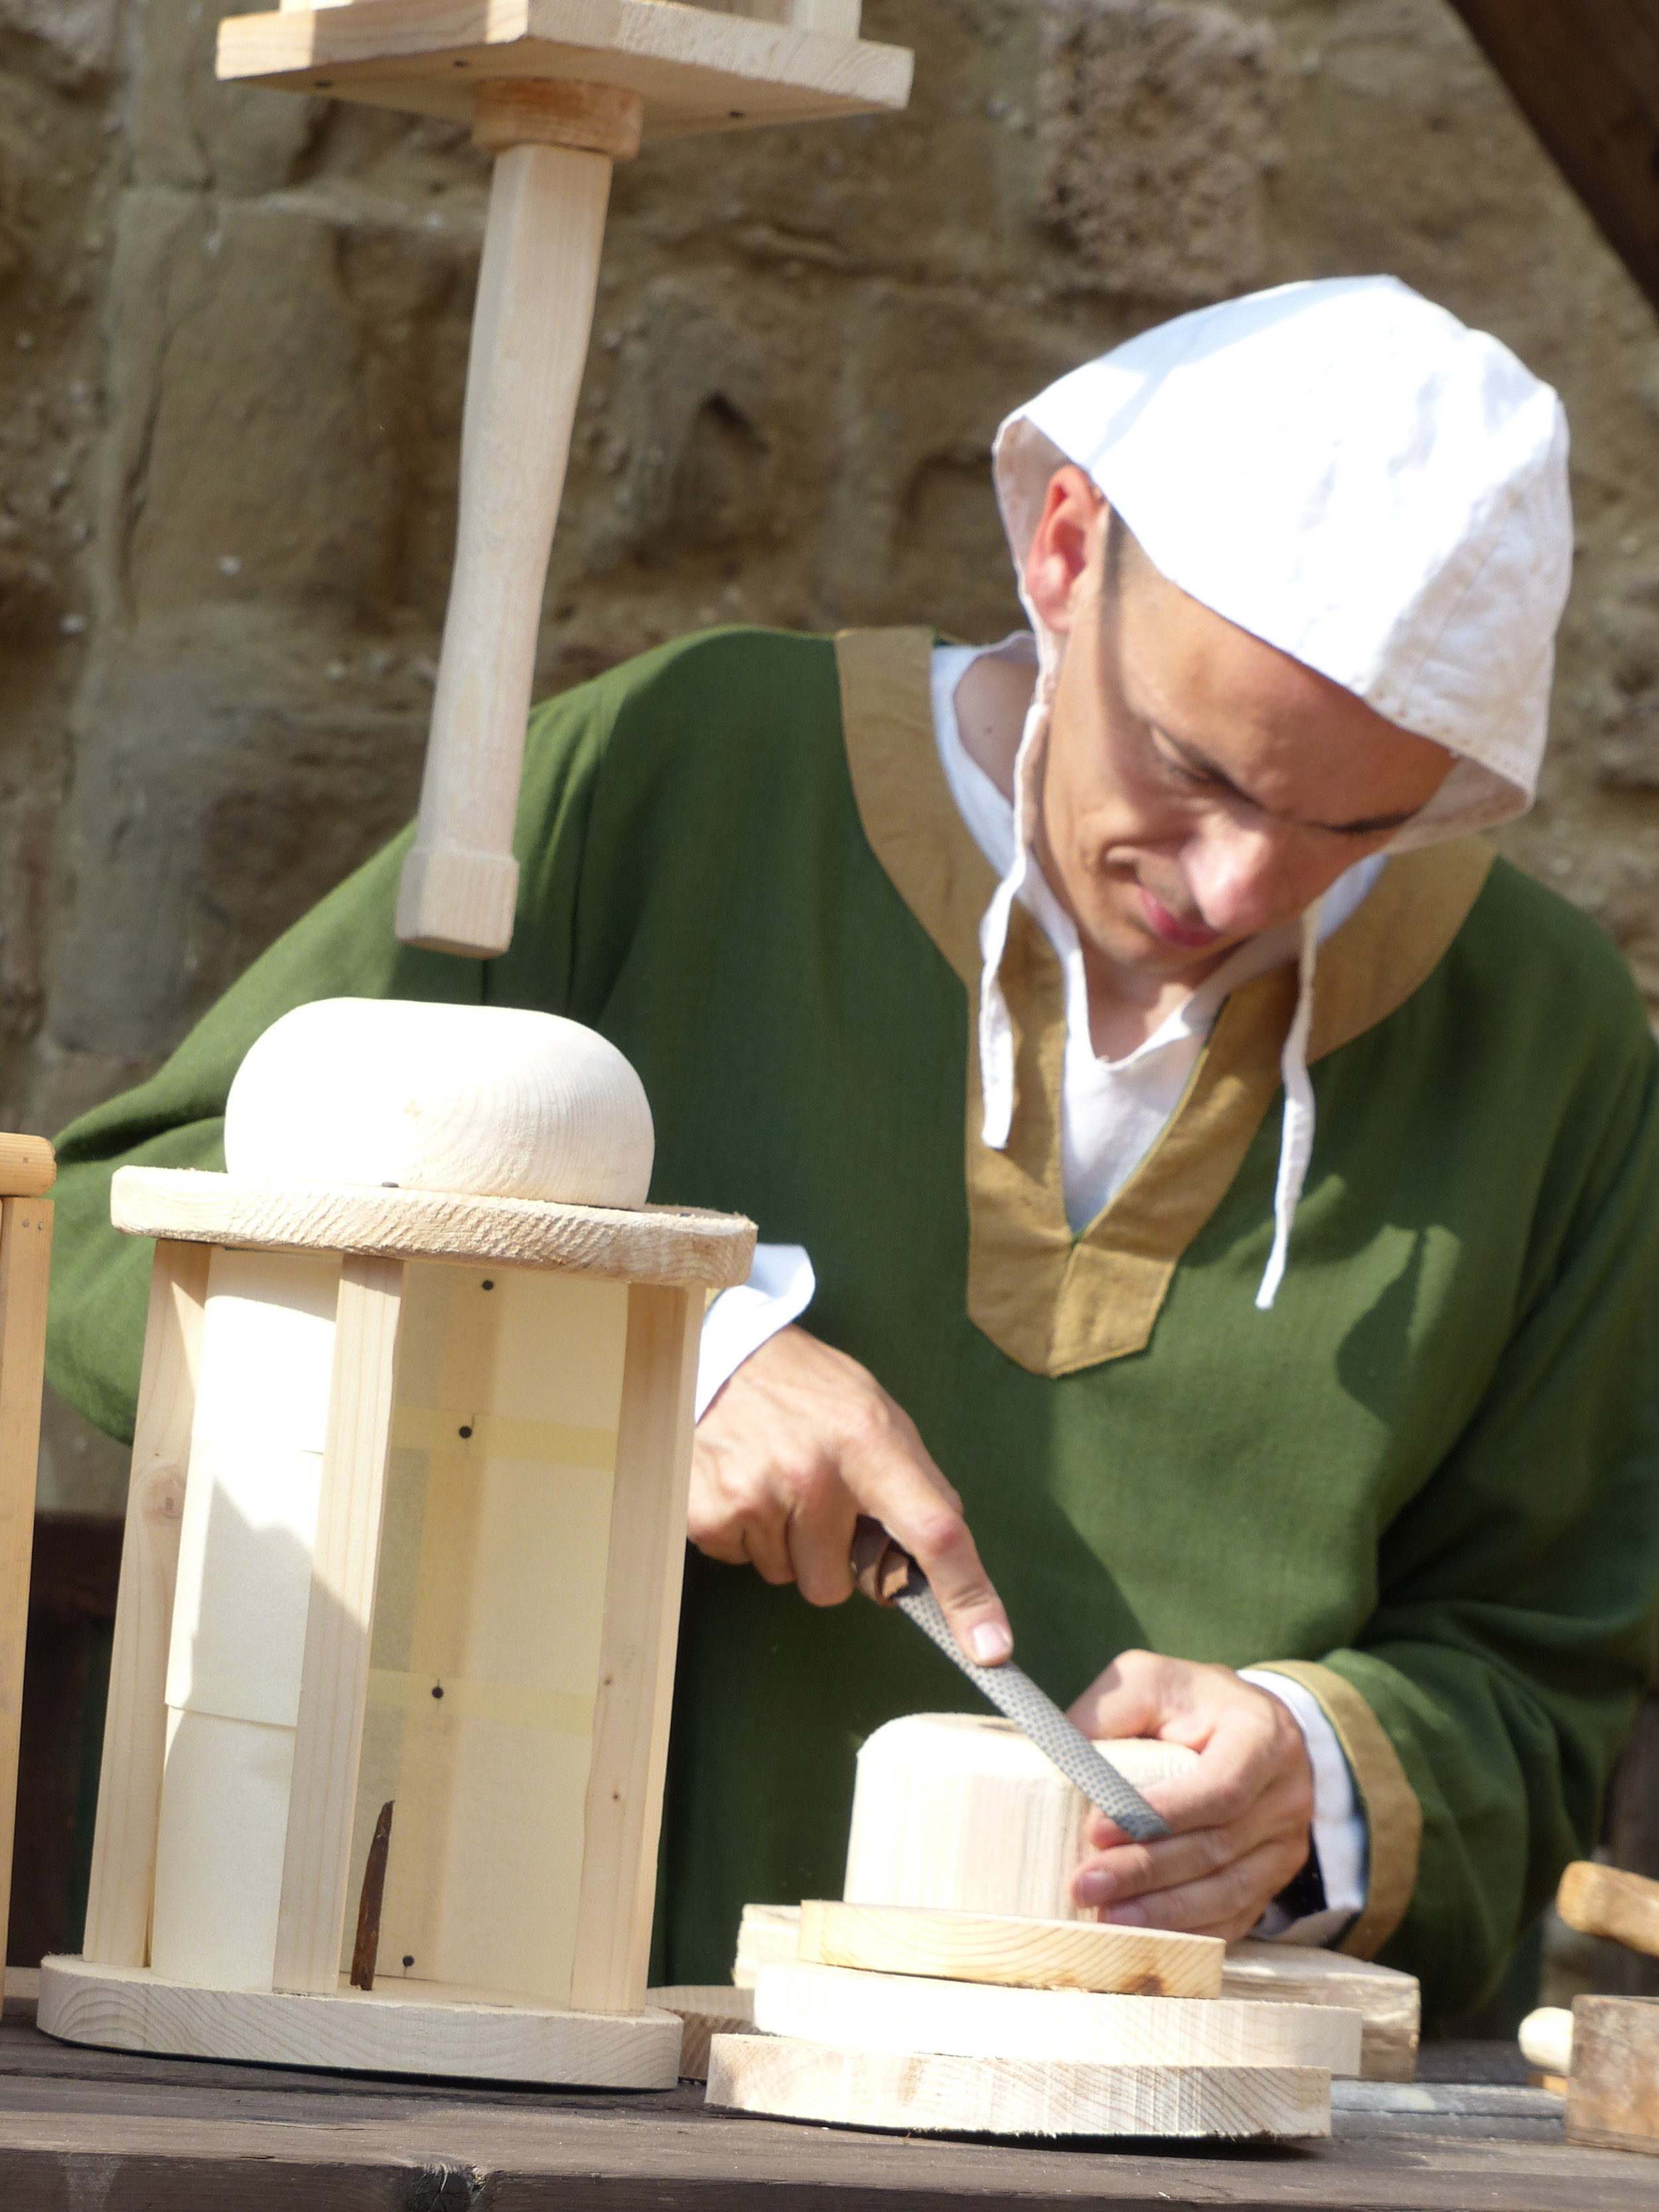 Wood smith in Bevagna